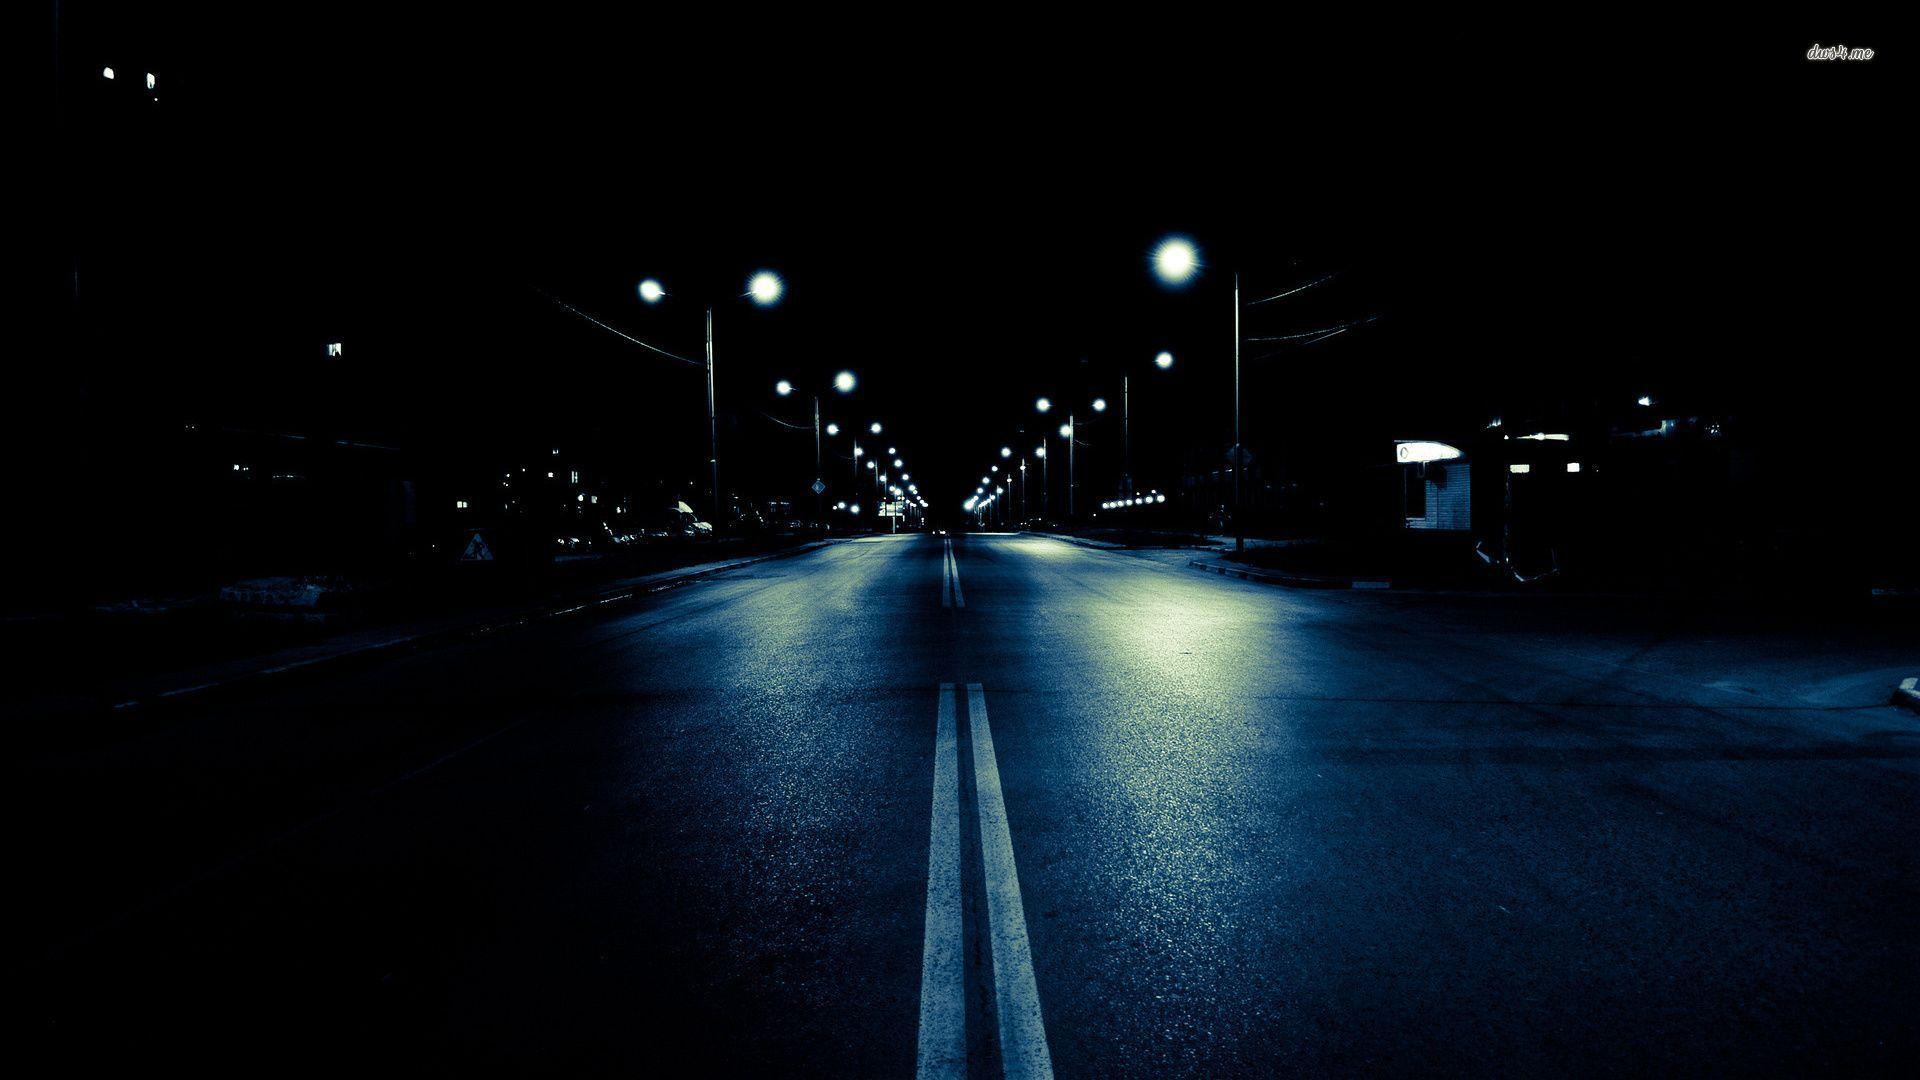 Dark Street At Night HD Wallpaper, Backgrounds Image